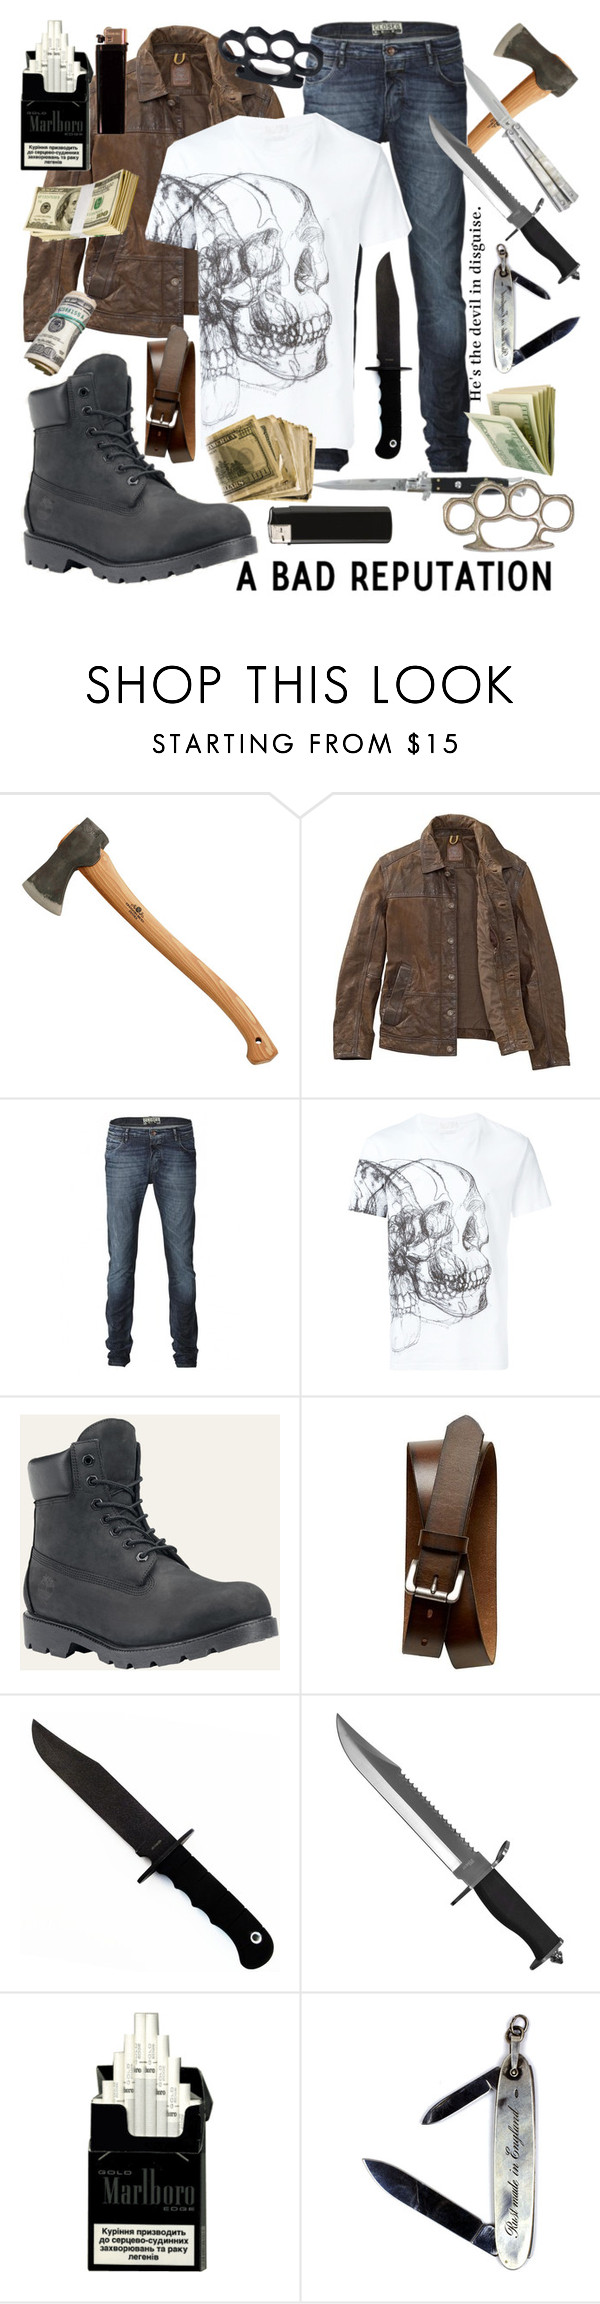 """""""Viktor"""" by ugliboi ❤ liked on Polyvore featuring Timberland, Closed, Alexander McQueen, Banana Republic, Whetstone Cutlery, Switchblade Stiletto, GAS Jeans, men's fashion and menswear"""